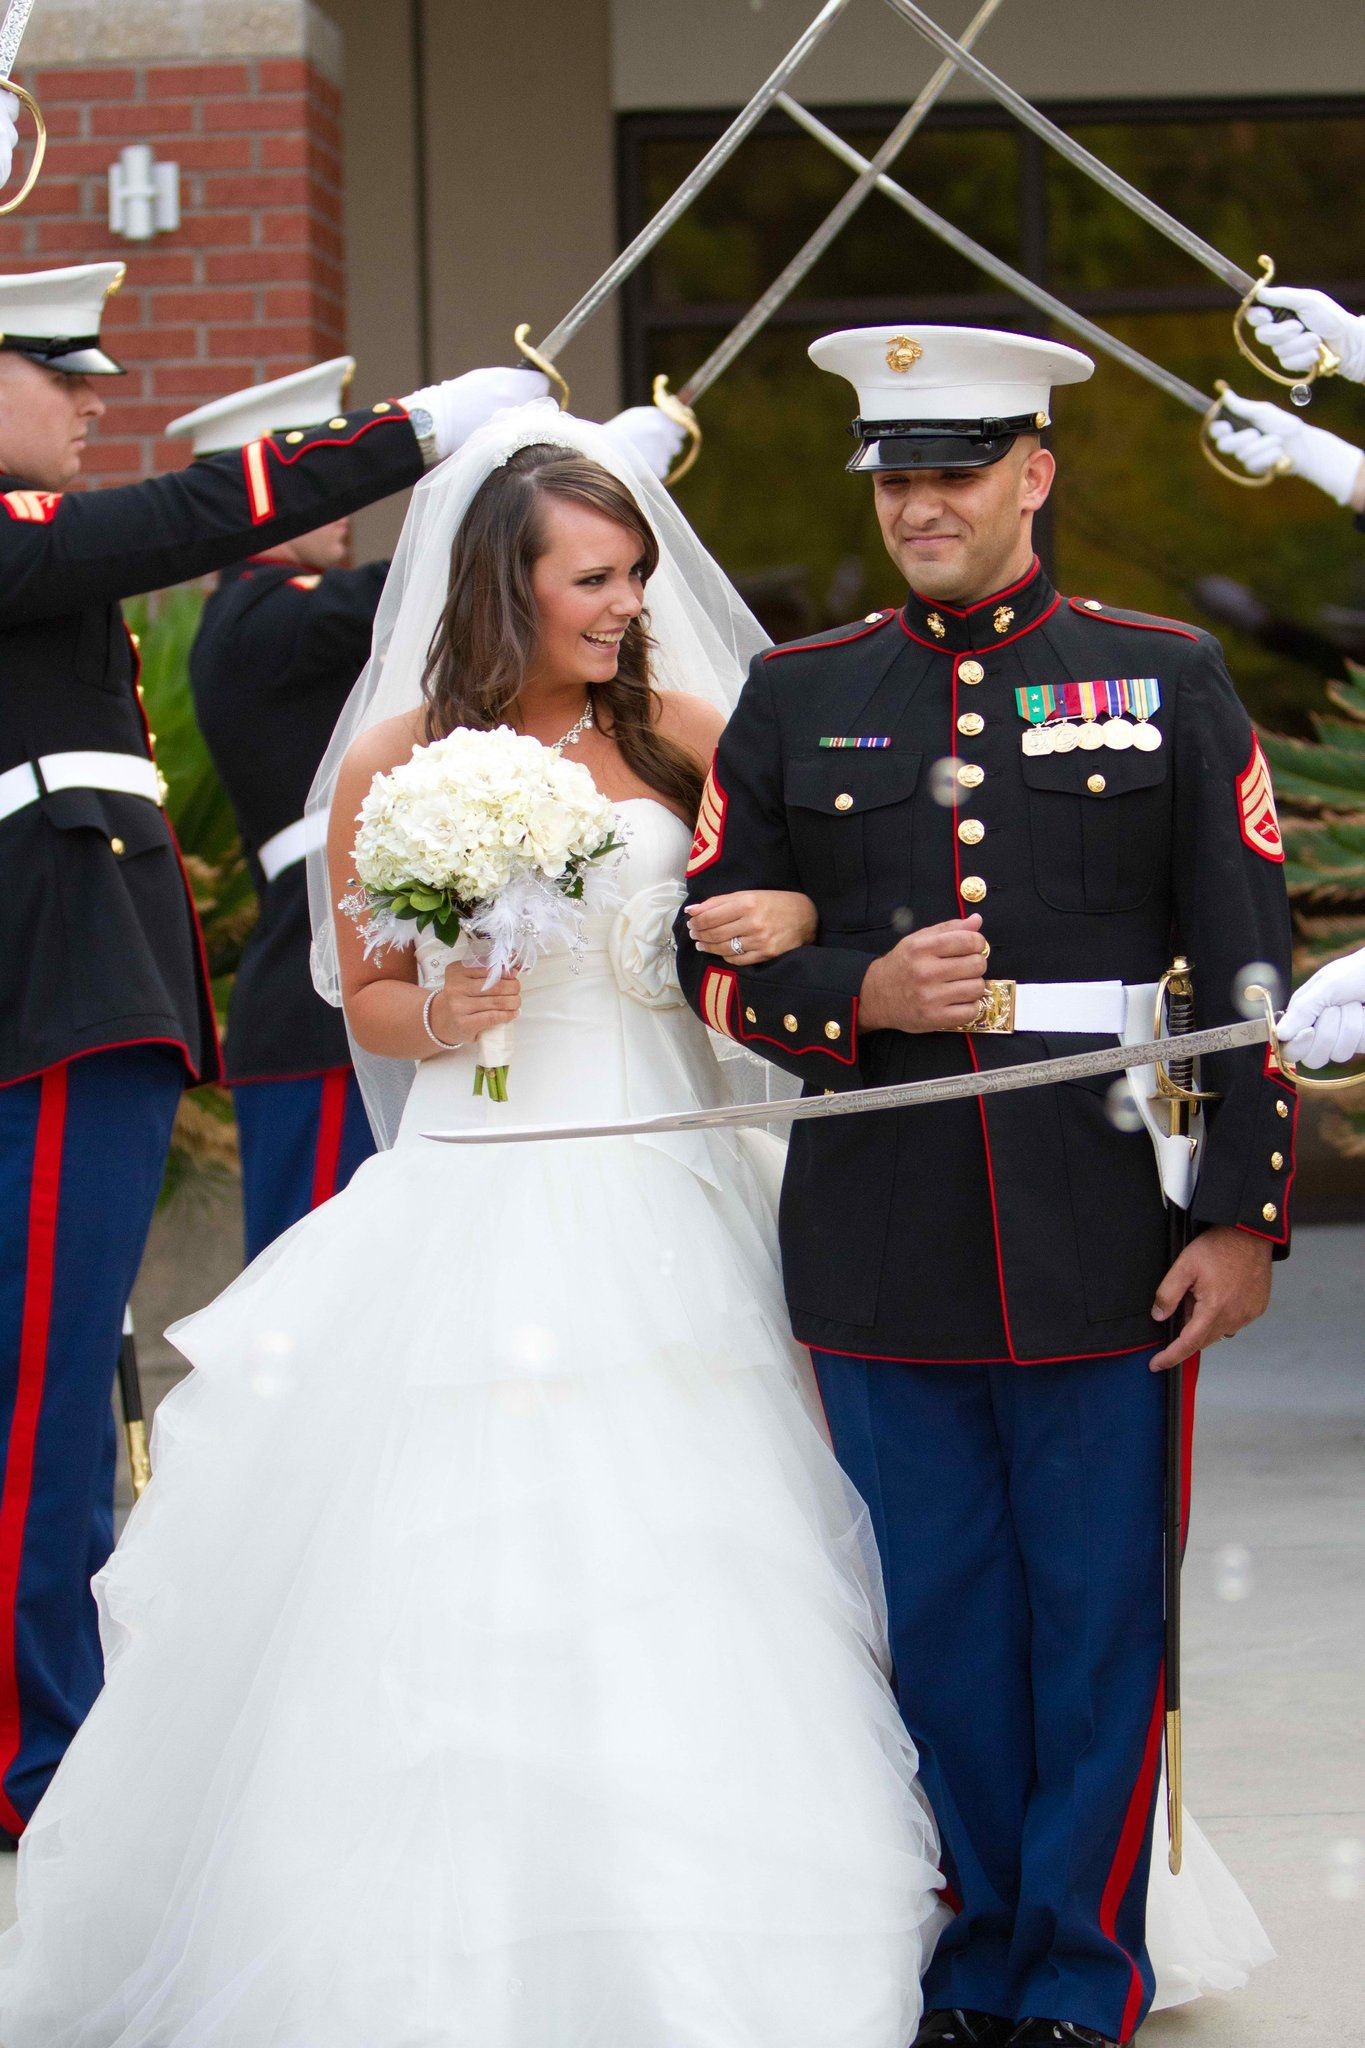 Military Wedding Marine Redwhiteblue Only Officers Can Have The Sword Salute At A Wedding Marine Wedding Military Wedding Marine Corps Wedding [ 2048 x 1365 Pixel ]